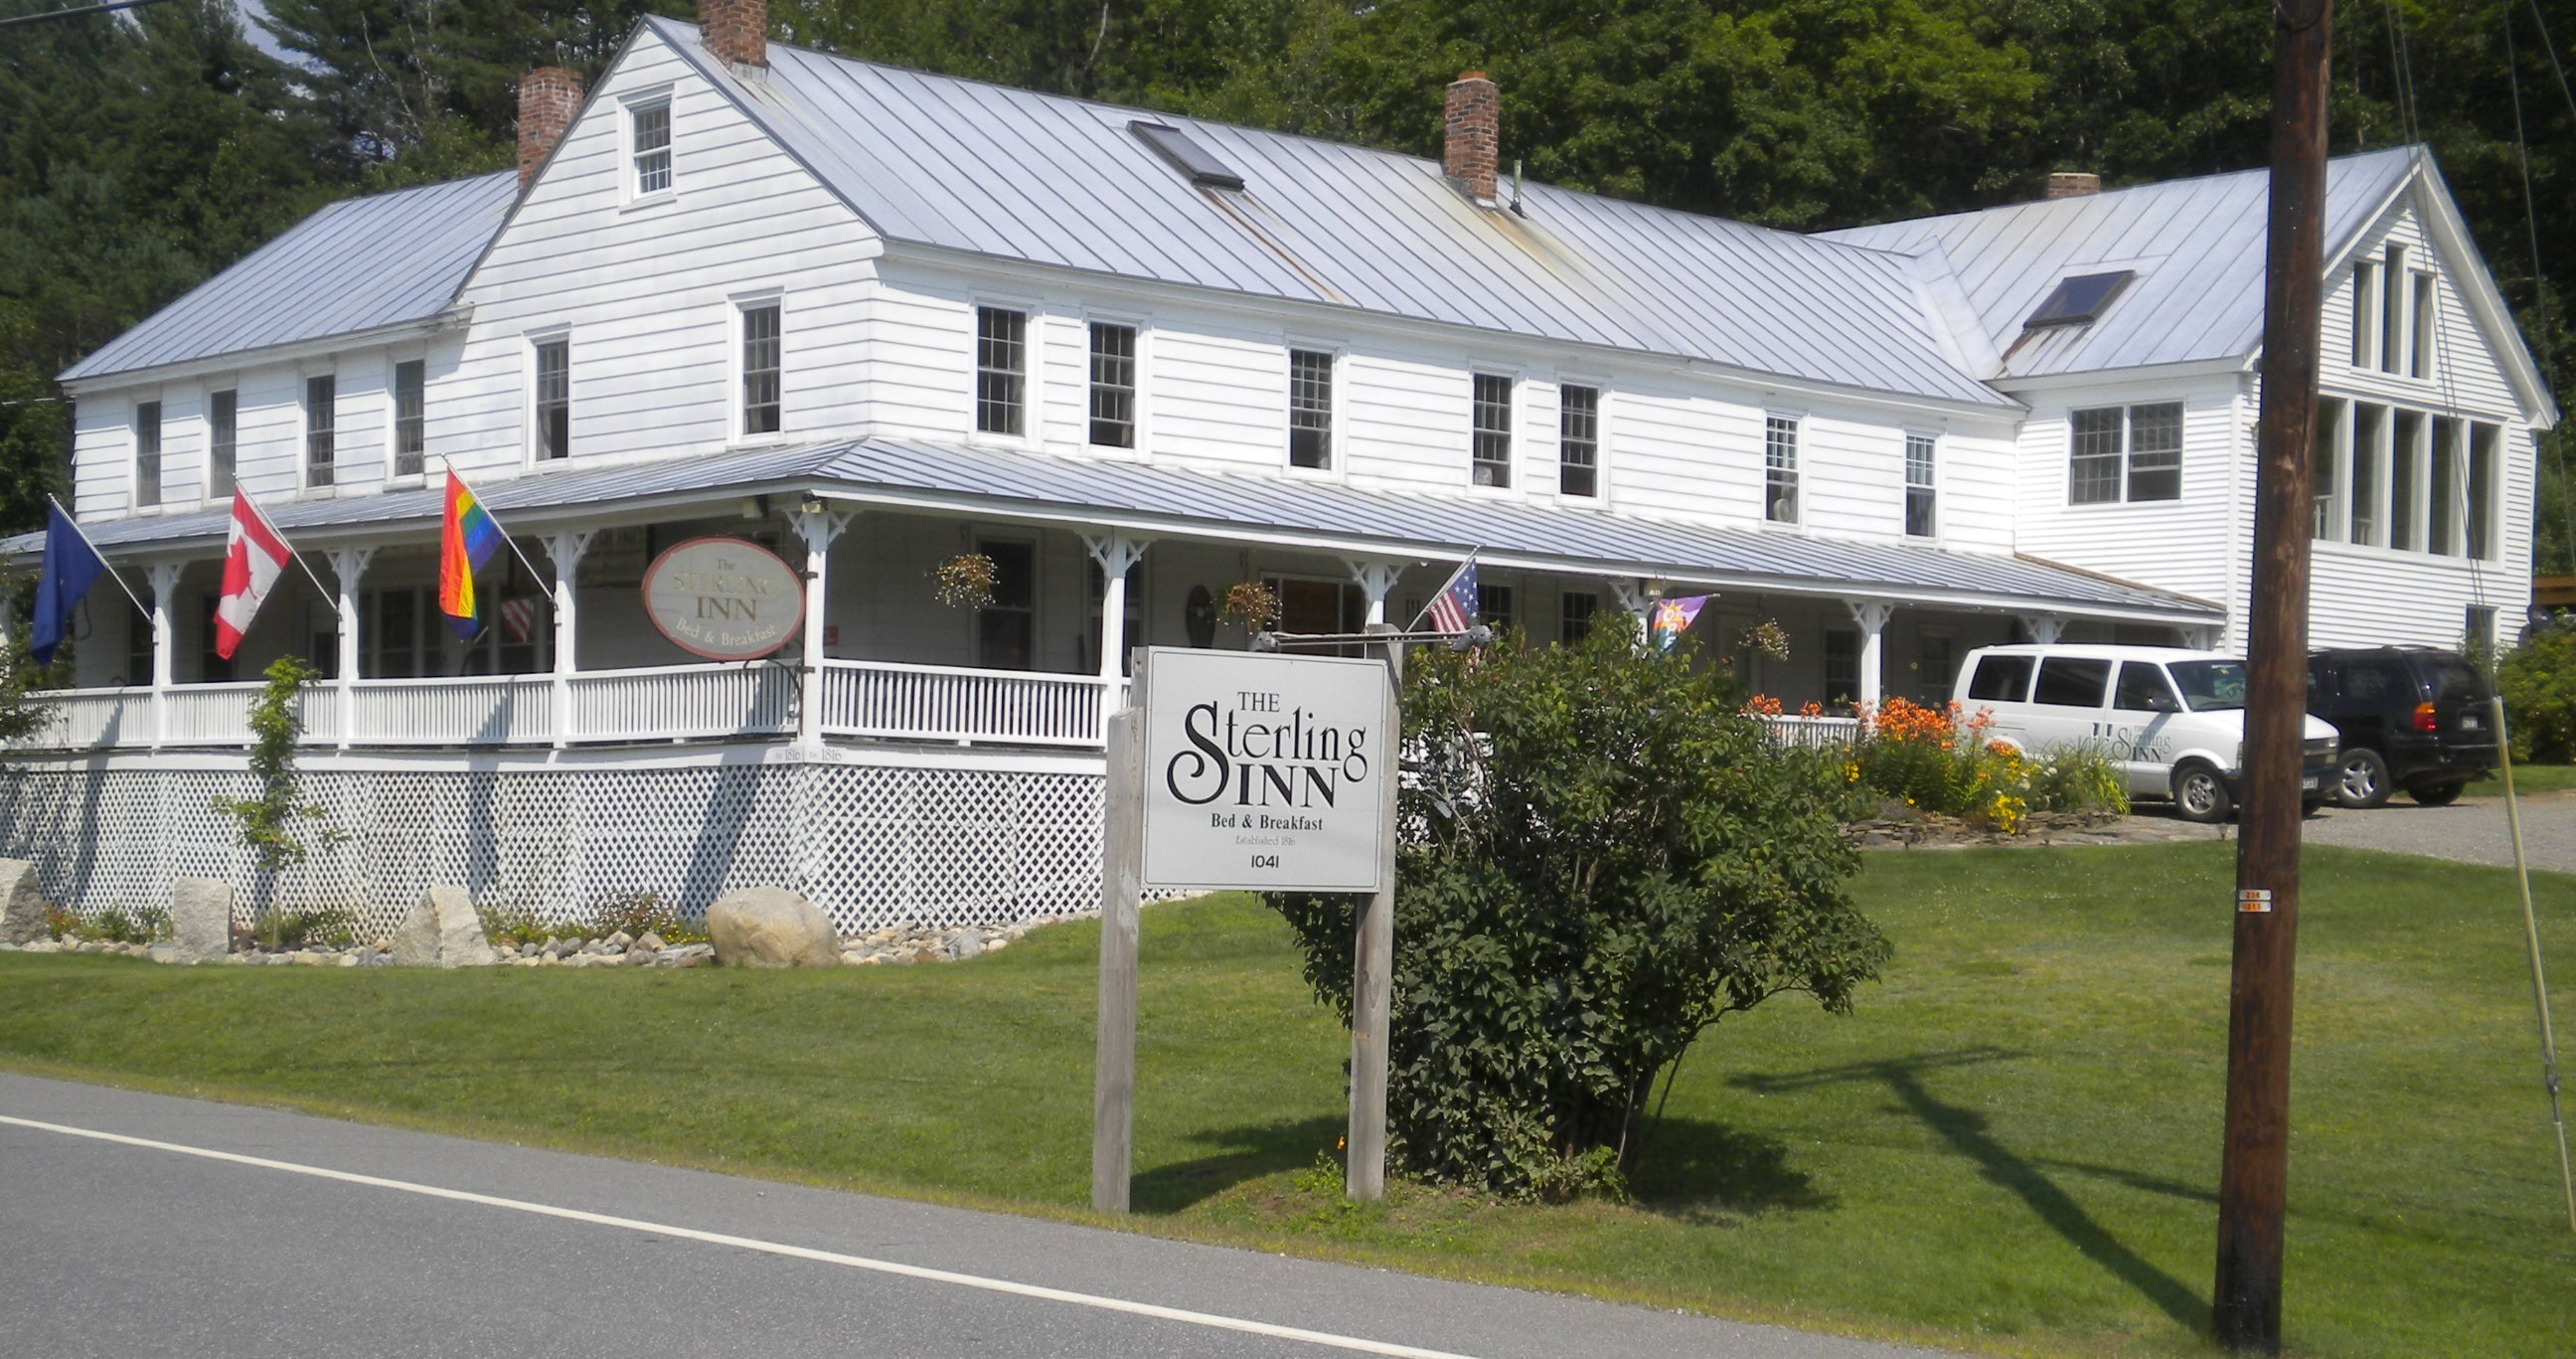 The Sterling Inn today